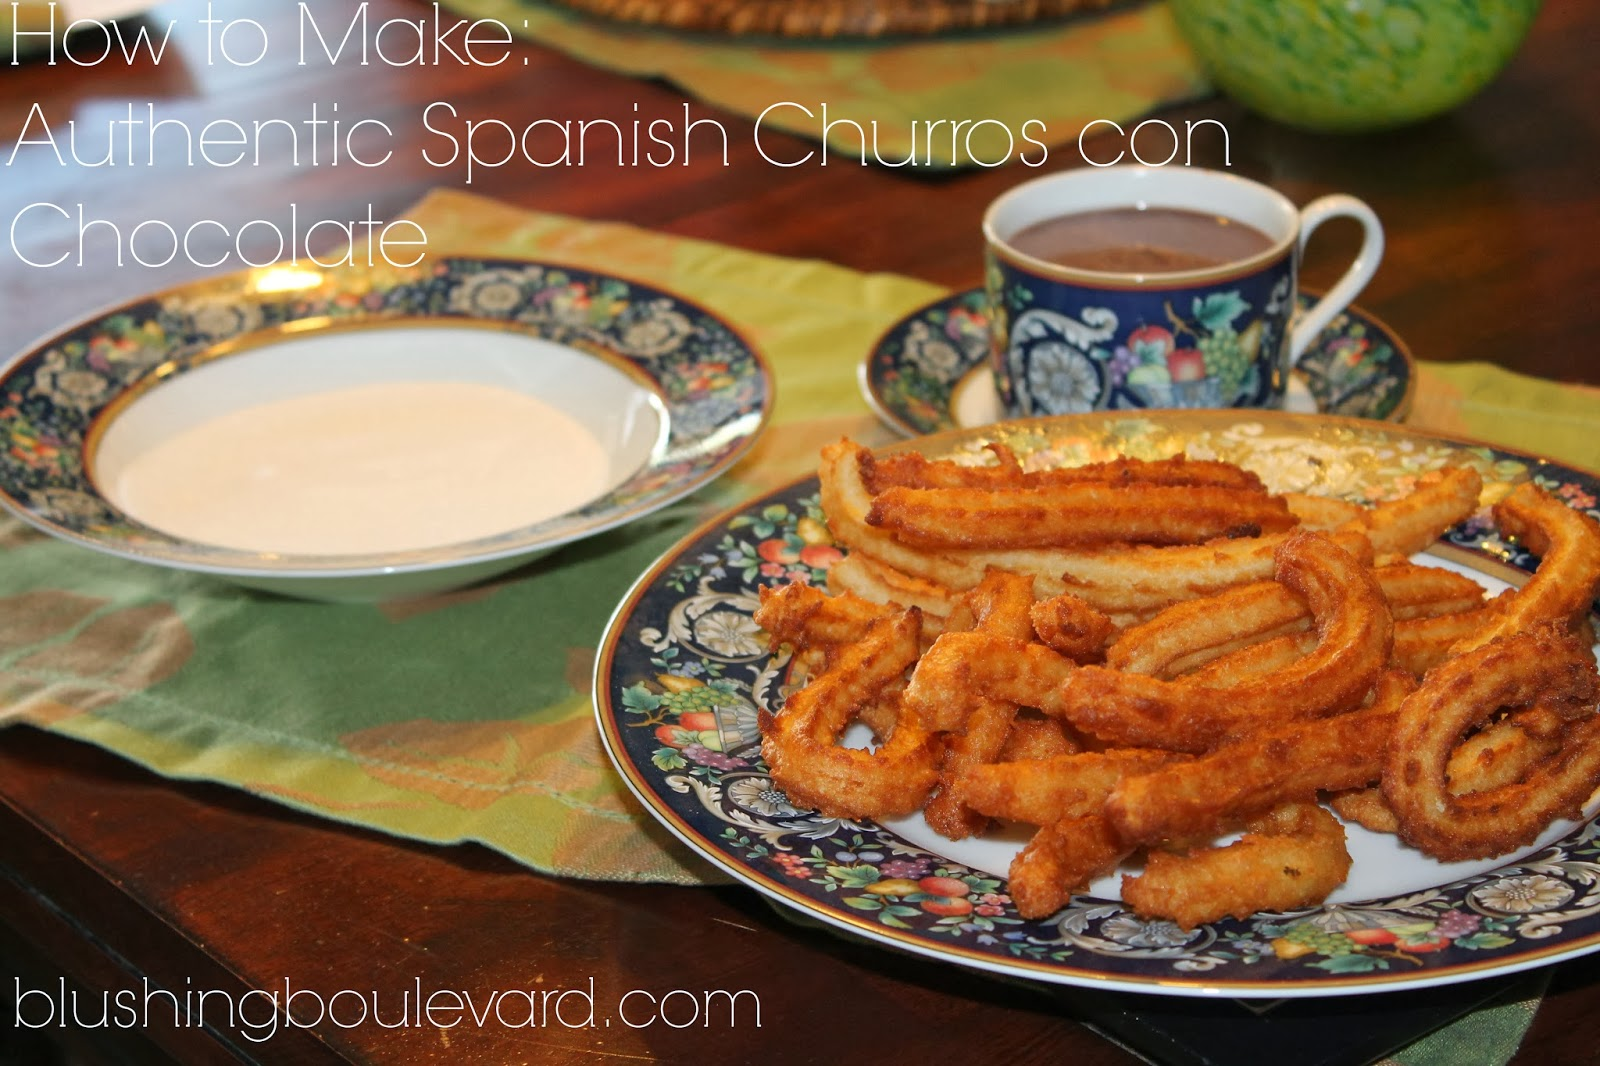 how to make authentic Spanish Churros con Chocolate